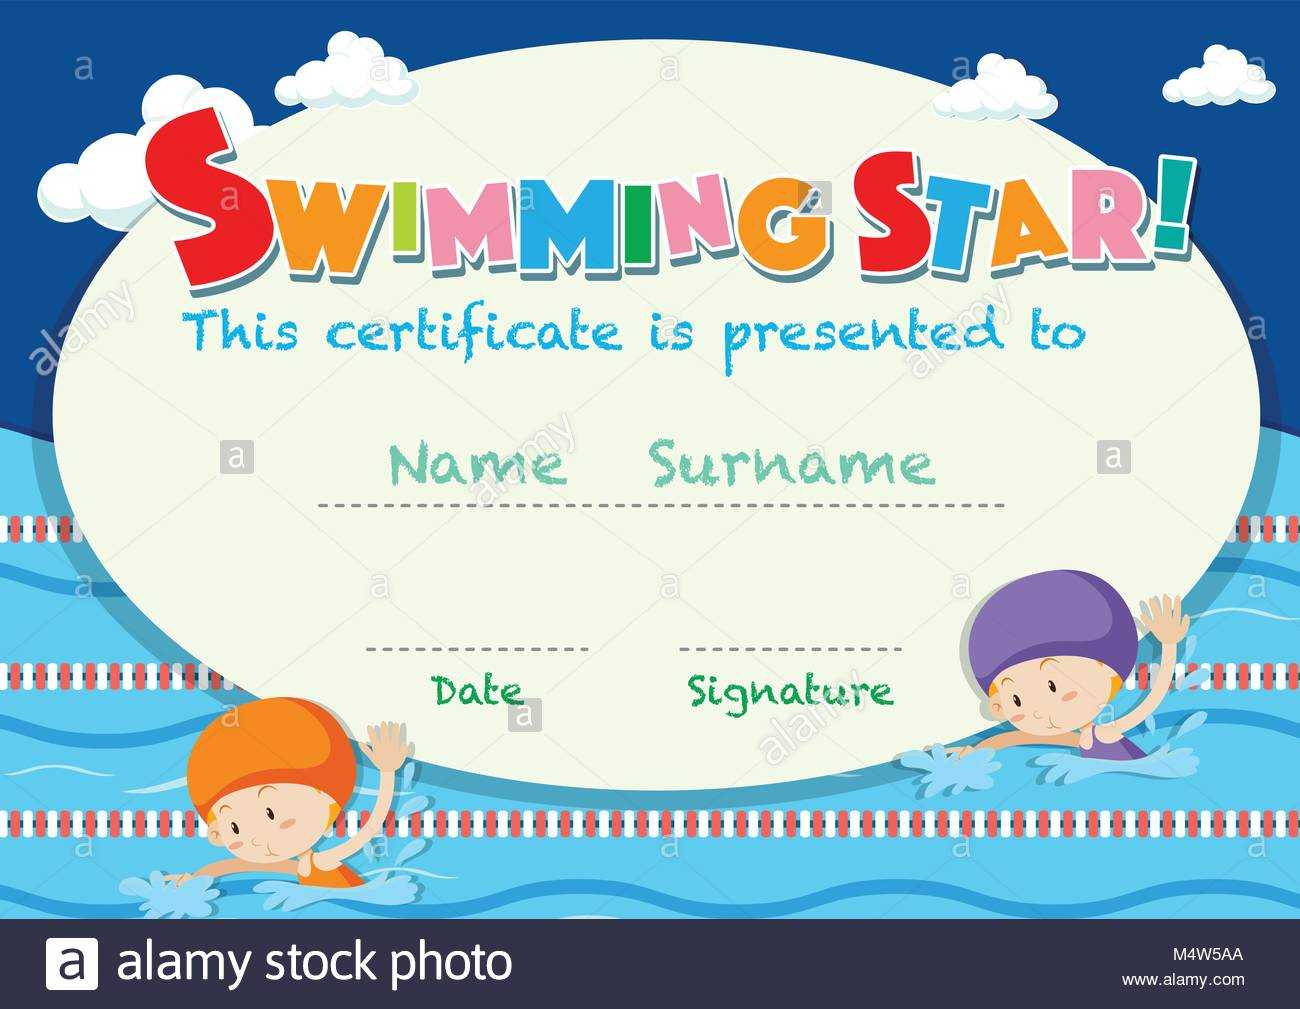 Swimming Certificate Stock Photos & Swimming Certificate Intended For Free Swimming Certificate Templates